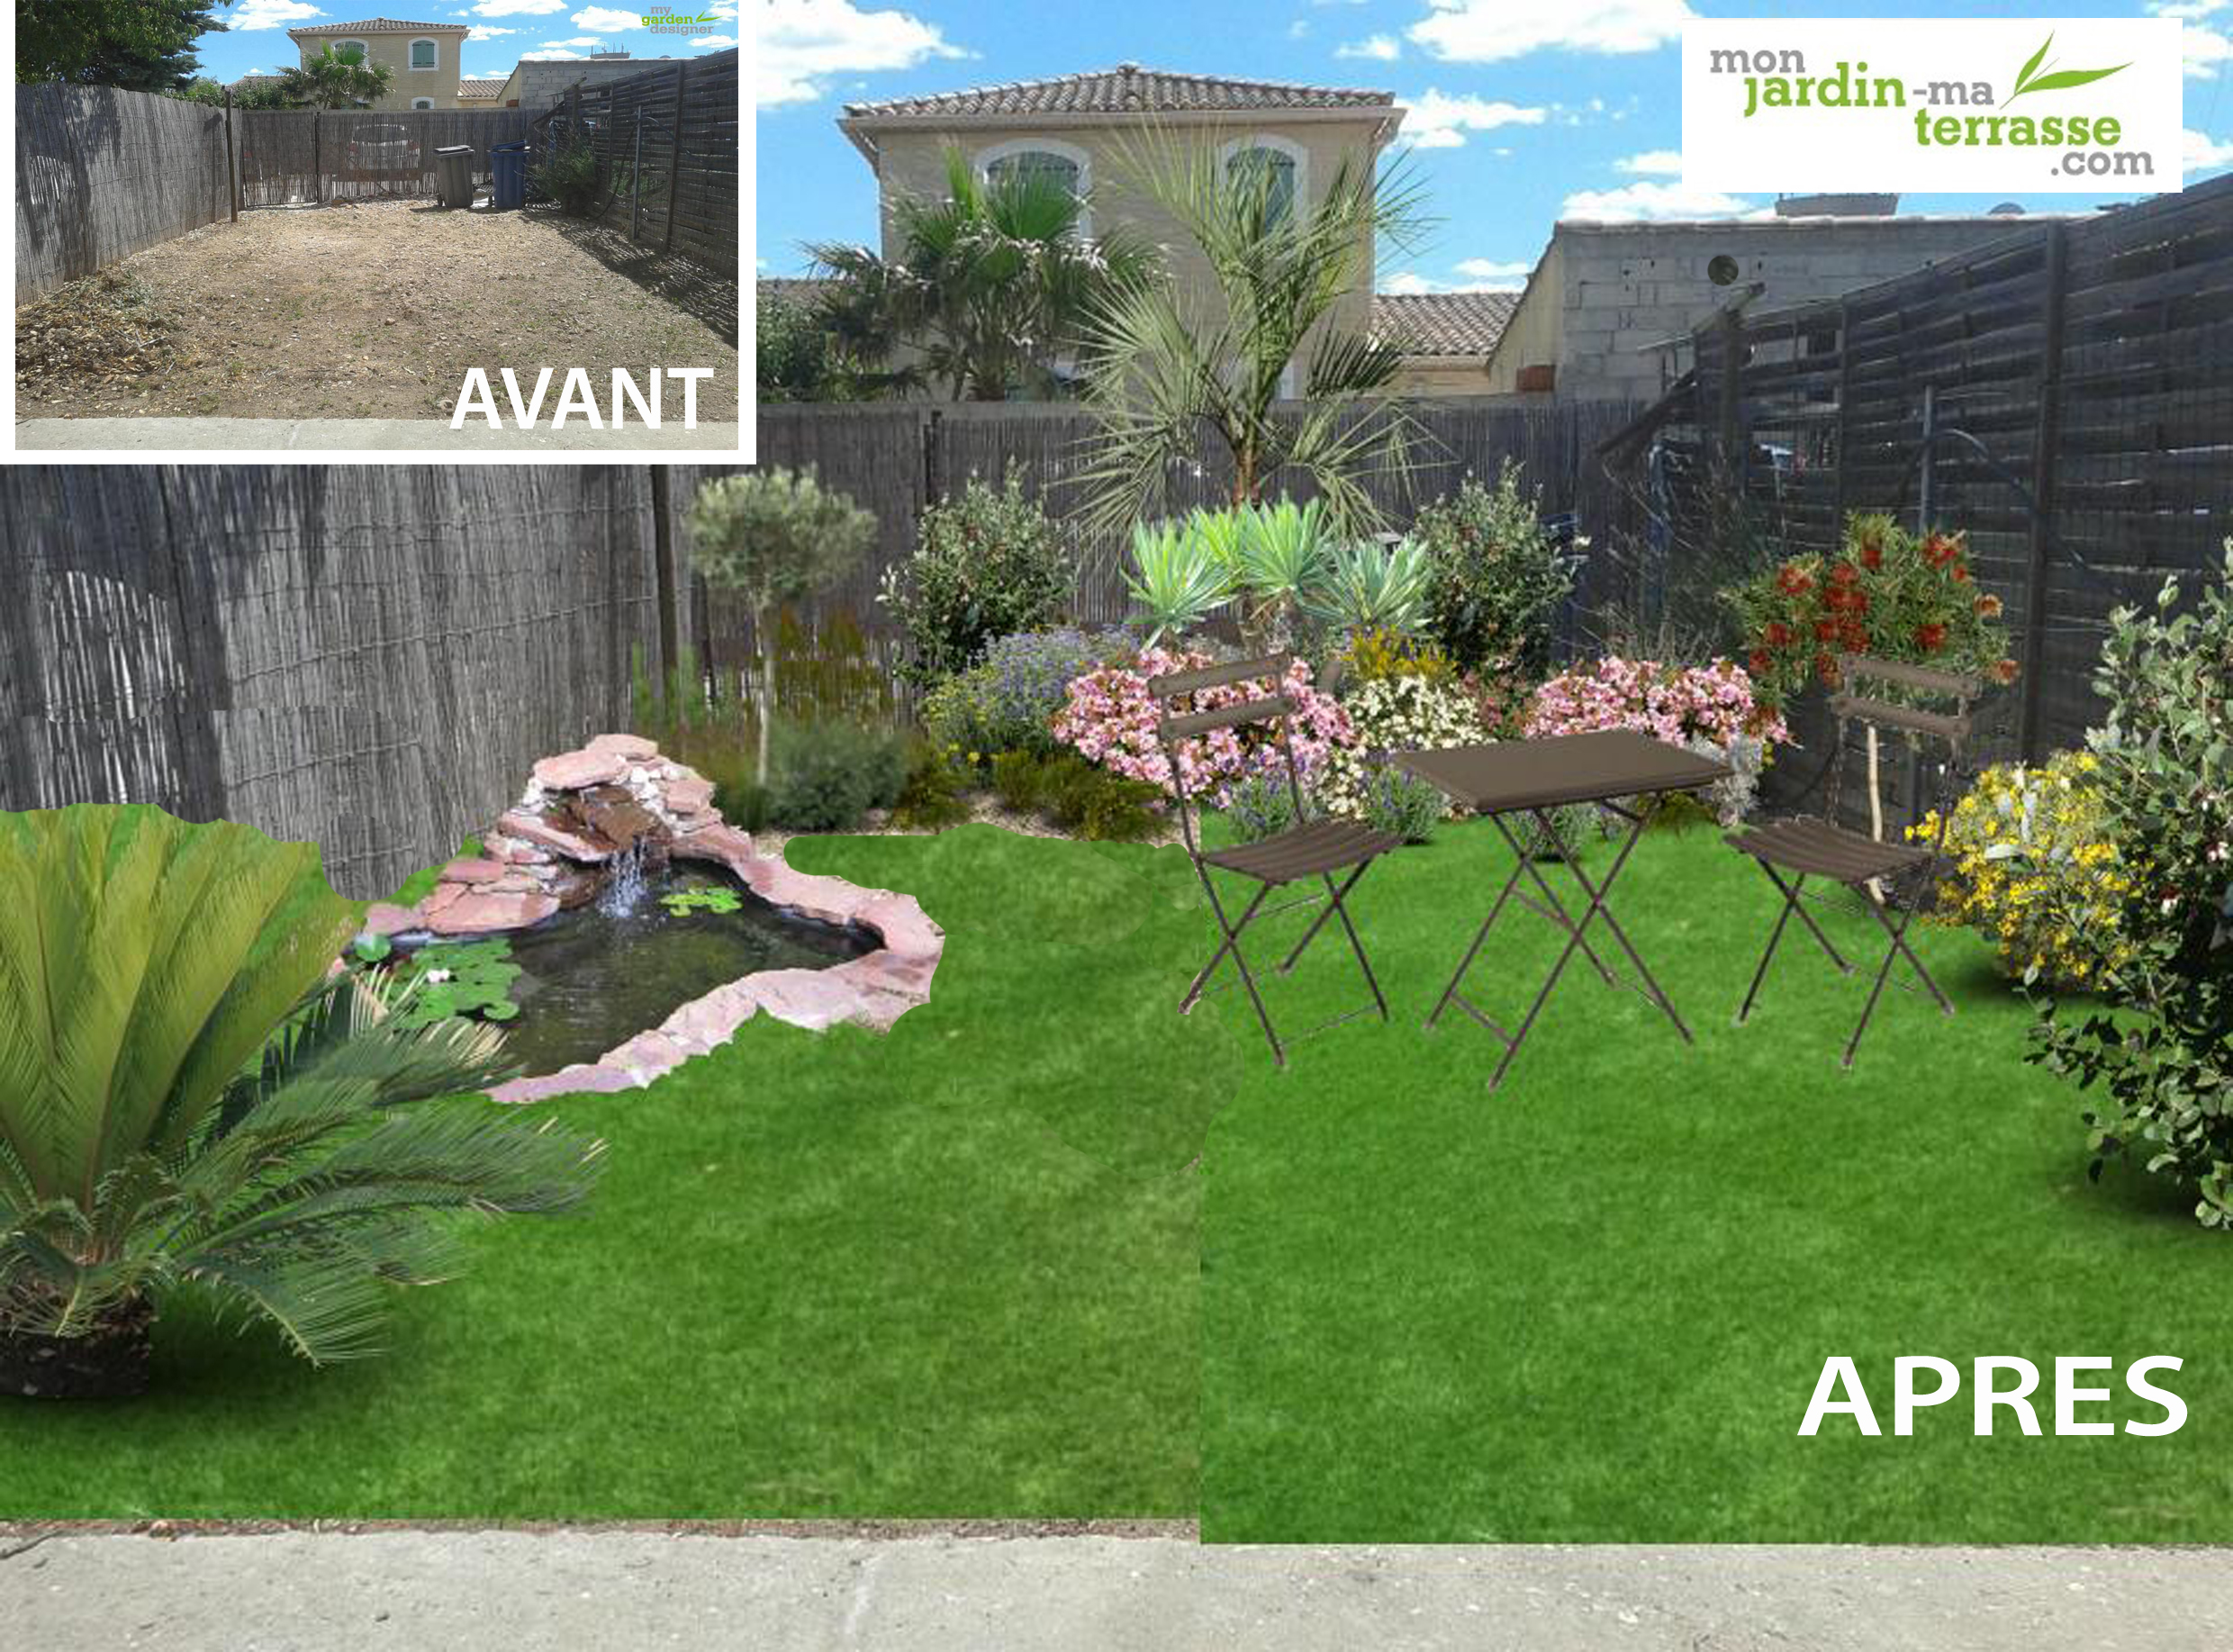 Id e d am nagement d un petit jardin monjardin for Amenagement de jardin